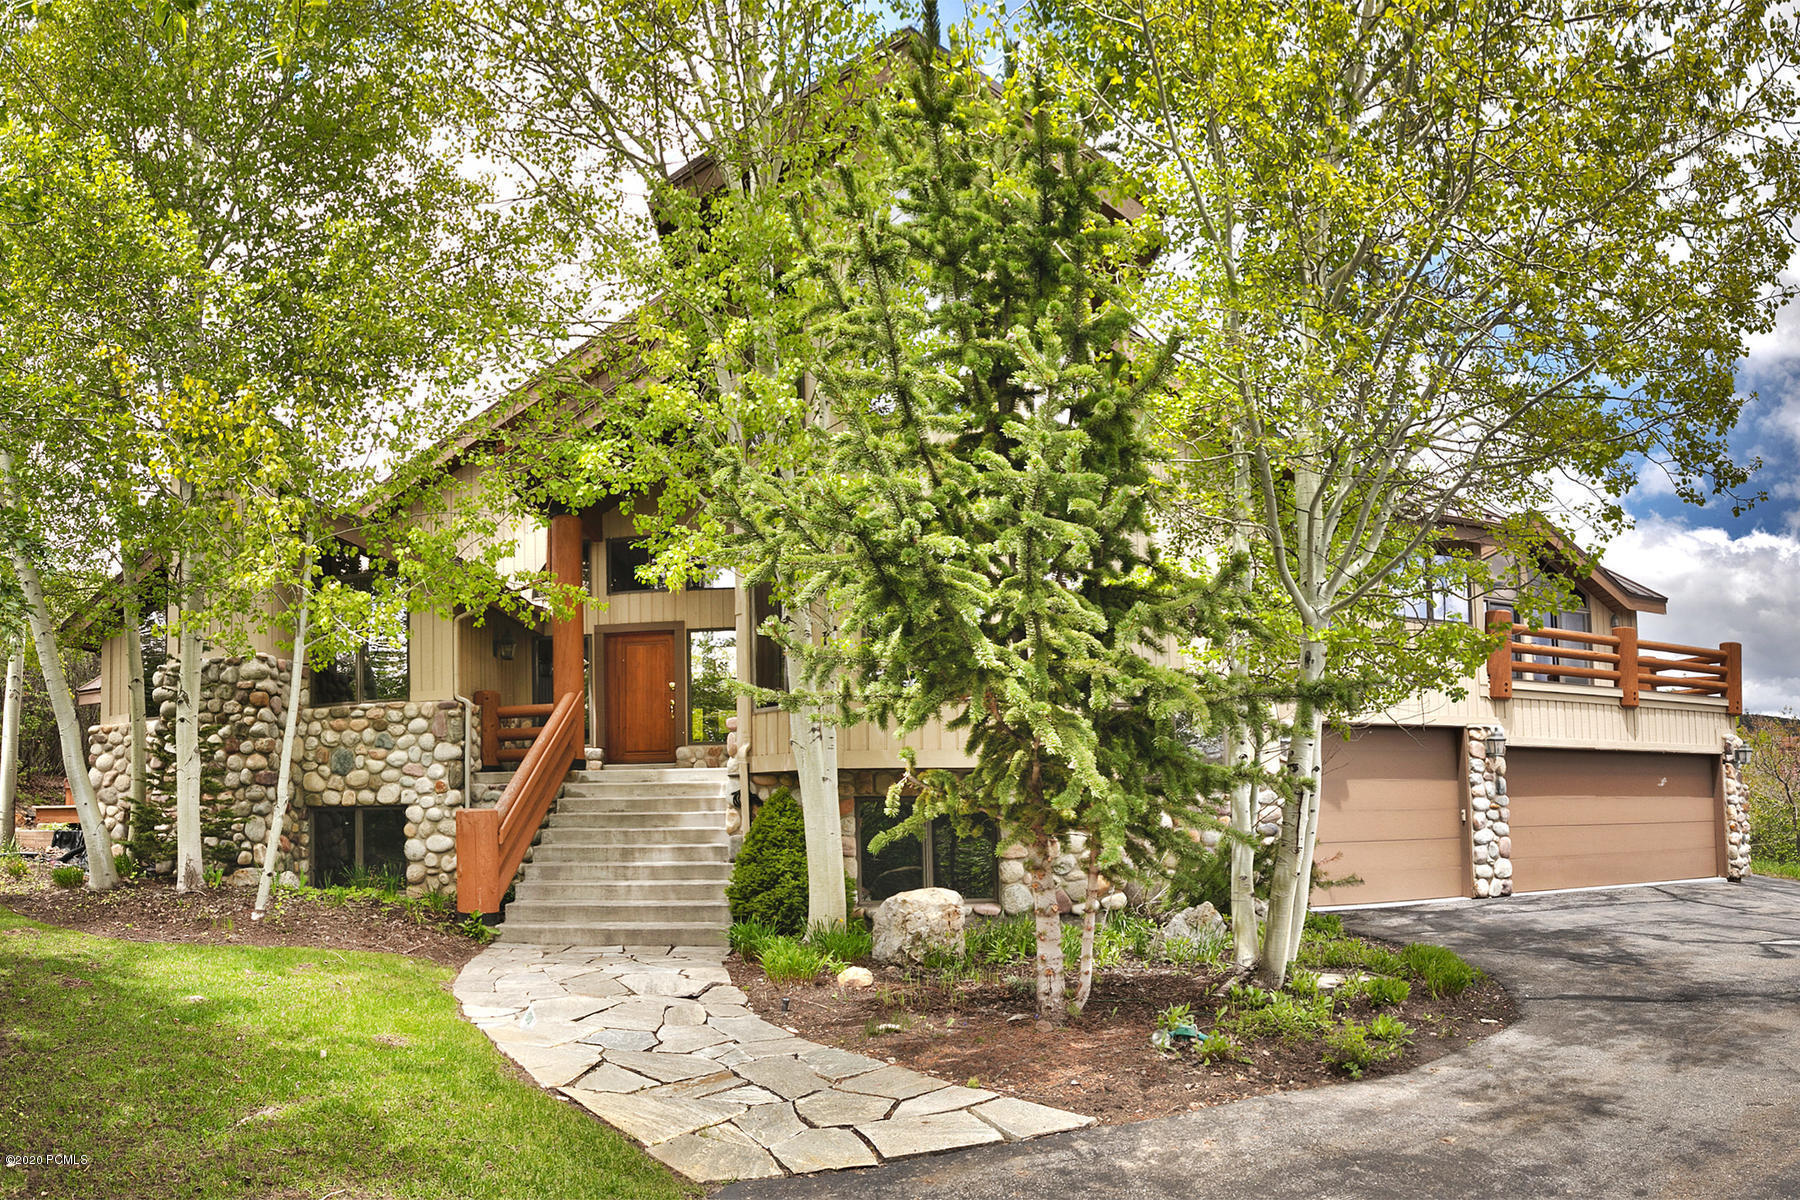 2433 Iron Canyon Drive, Park City, Utah 84060, 6 Bedrooms Bedrooms, ,6 BathroomsBathrooms,Single Family,For Sale,Iron Canyon,20190109112430415765000000